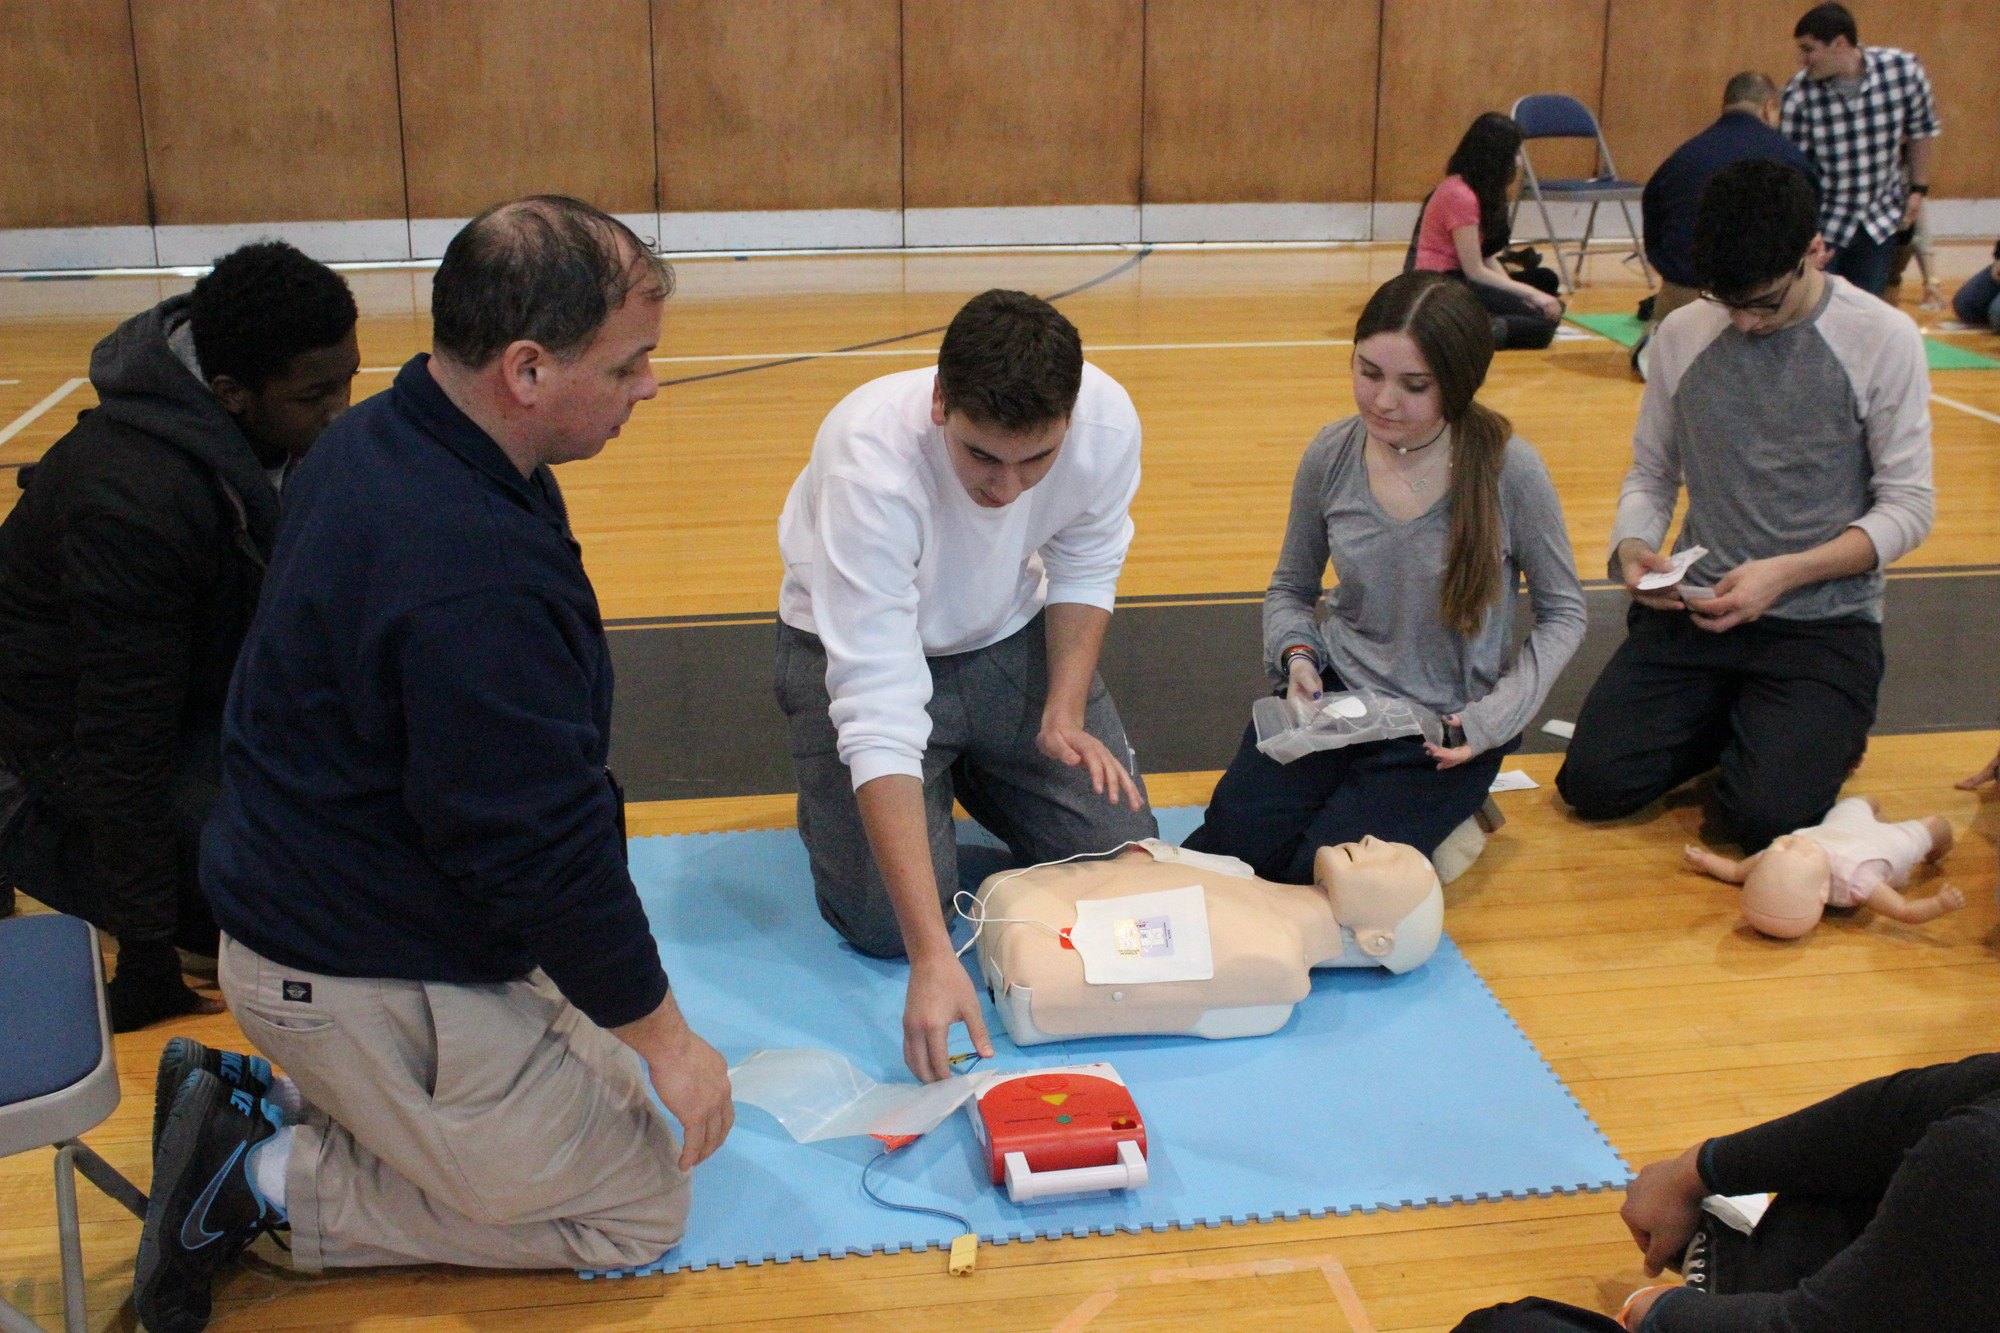 Hewlett High School senior Cory Golden, center, worked with a Safe Health Education instructor and classmates to perform CPR and practiced using an automated external defibrillator device.